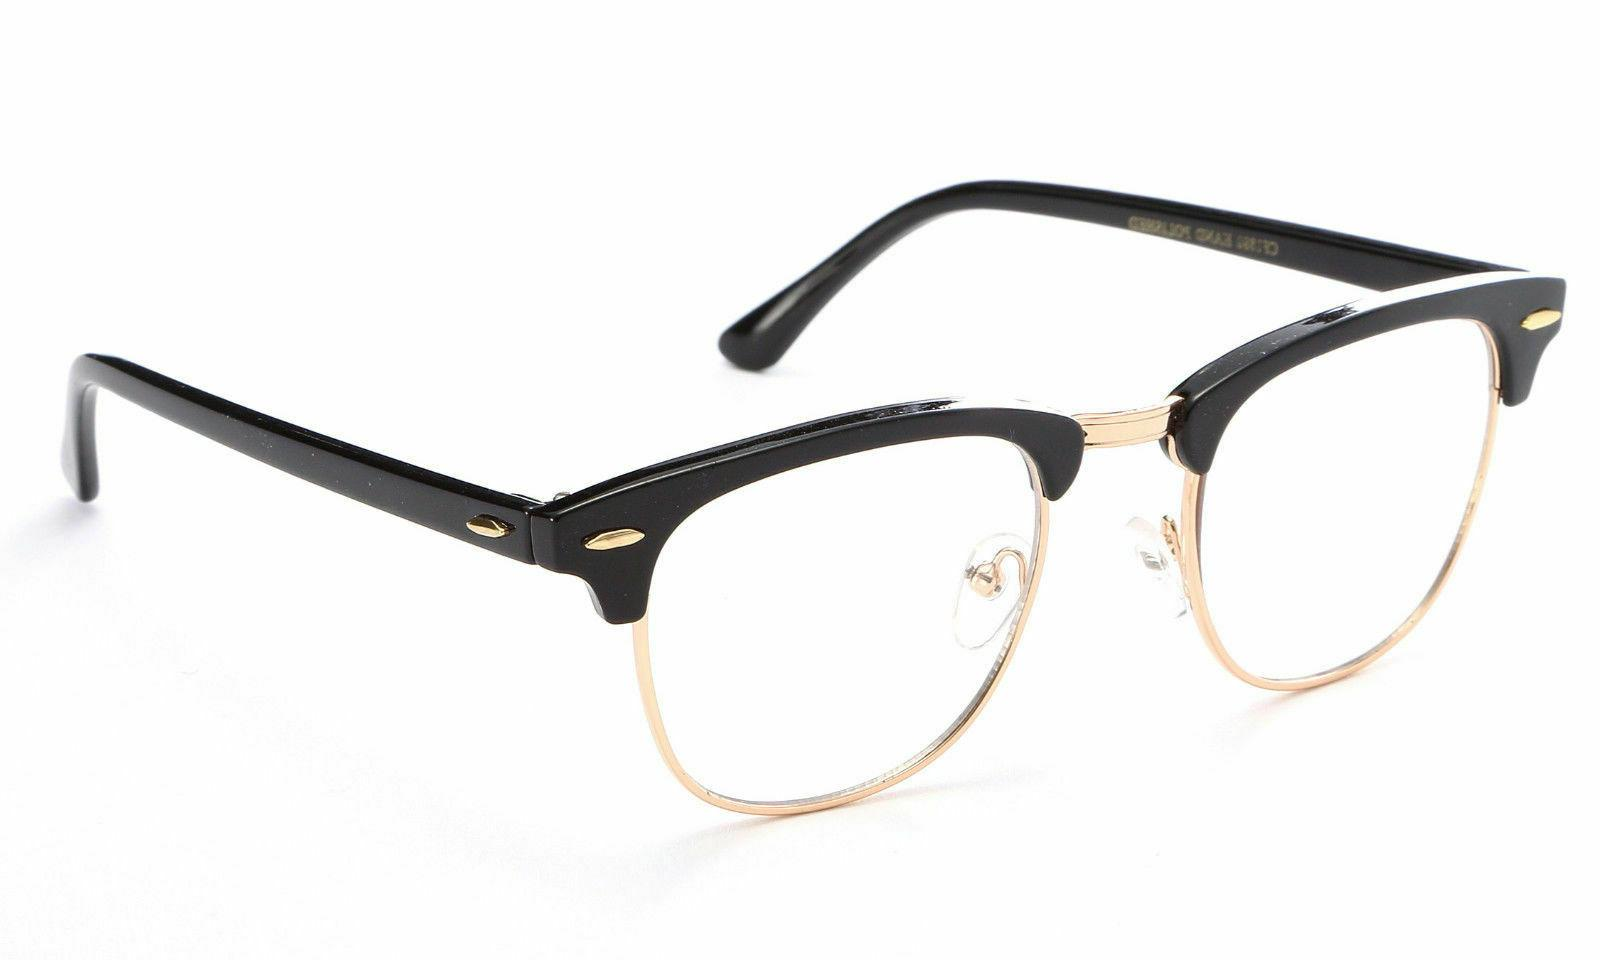 Interview Clear Lens Glasses Nerd Geek Retro Hipster 100%